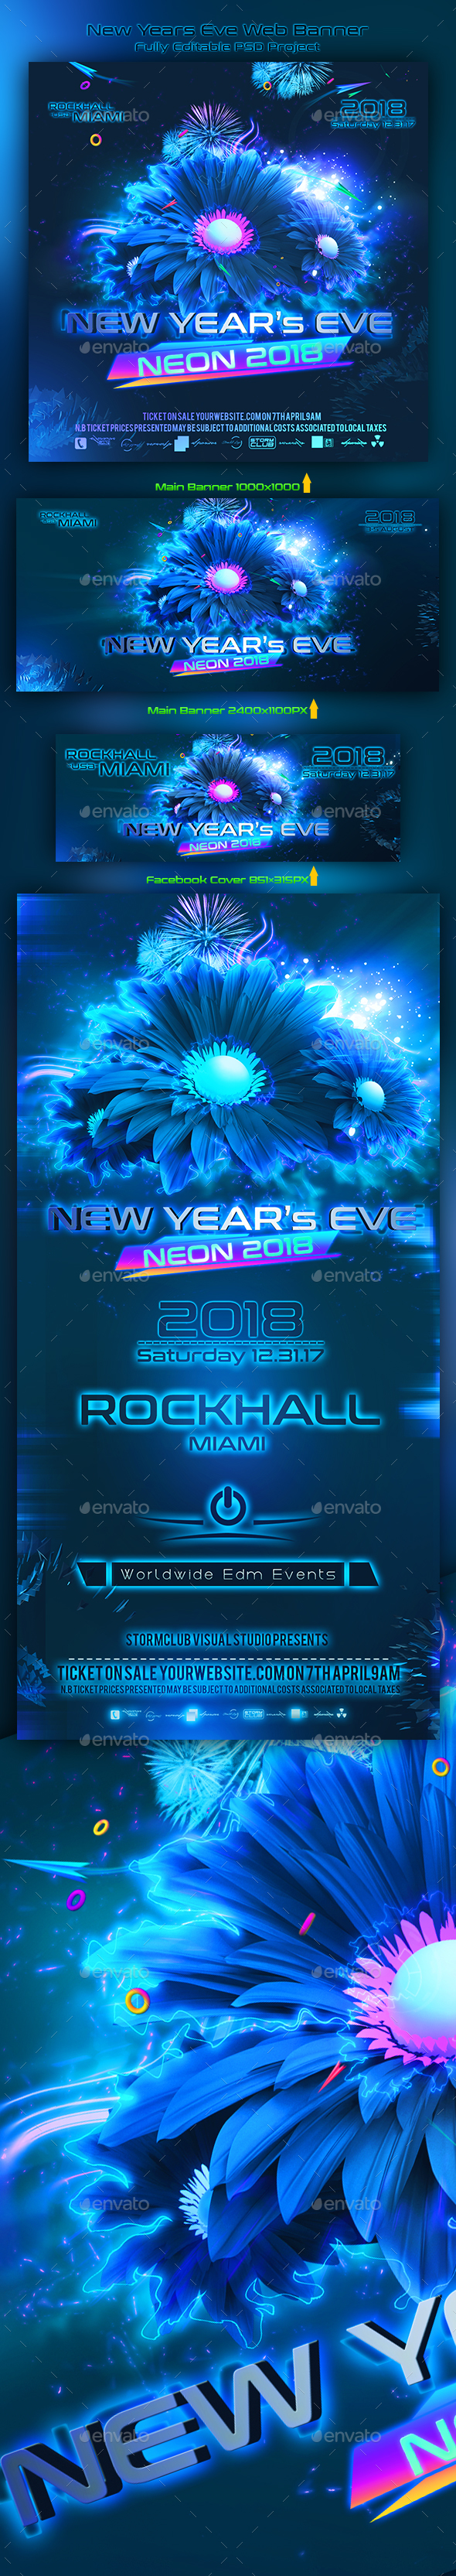 New Years Eve Web Banner - Miscellaneous Social Media